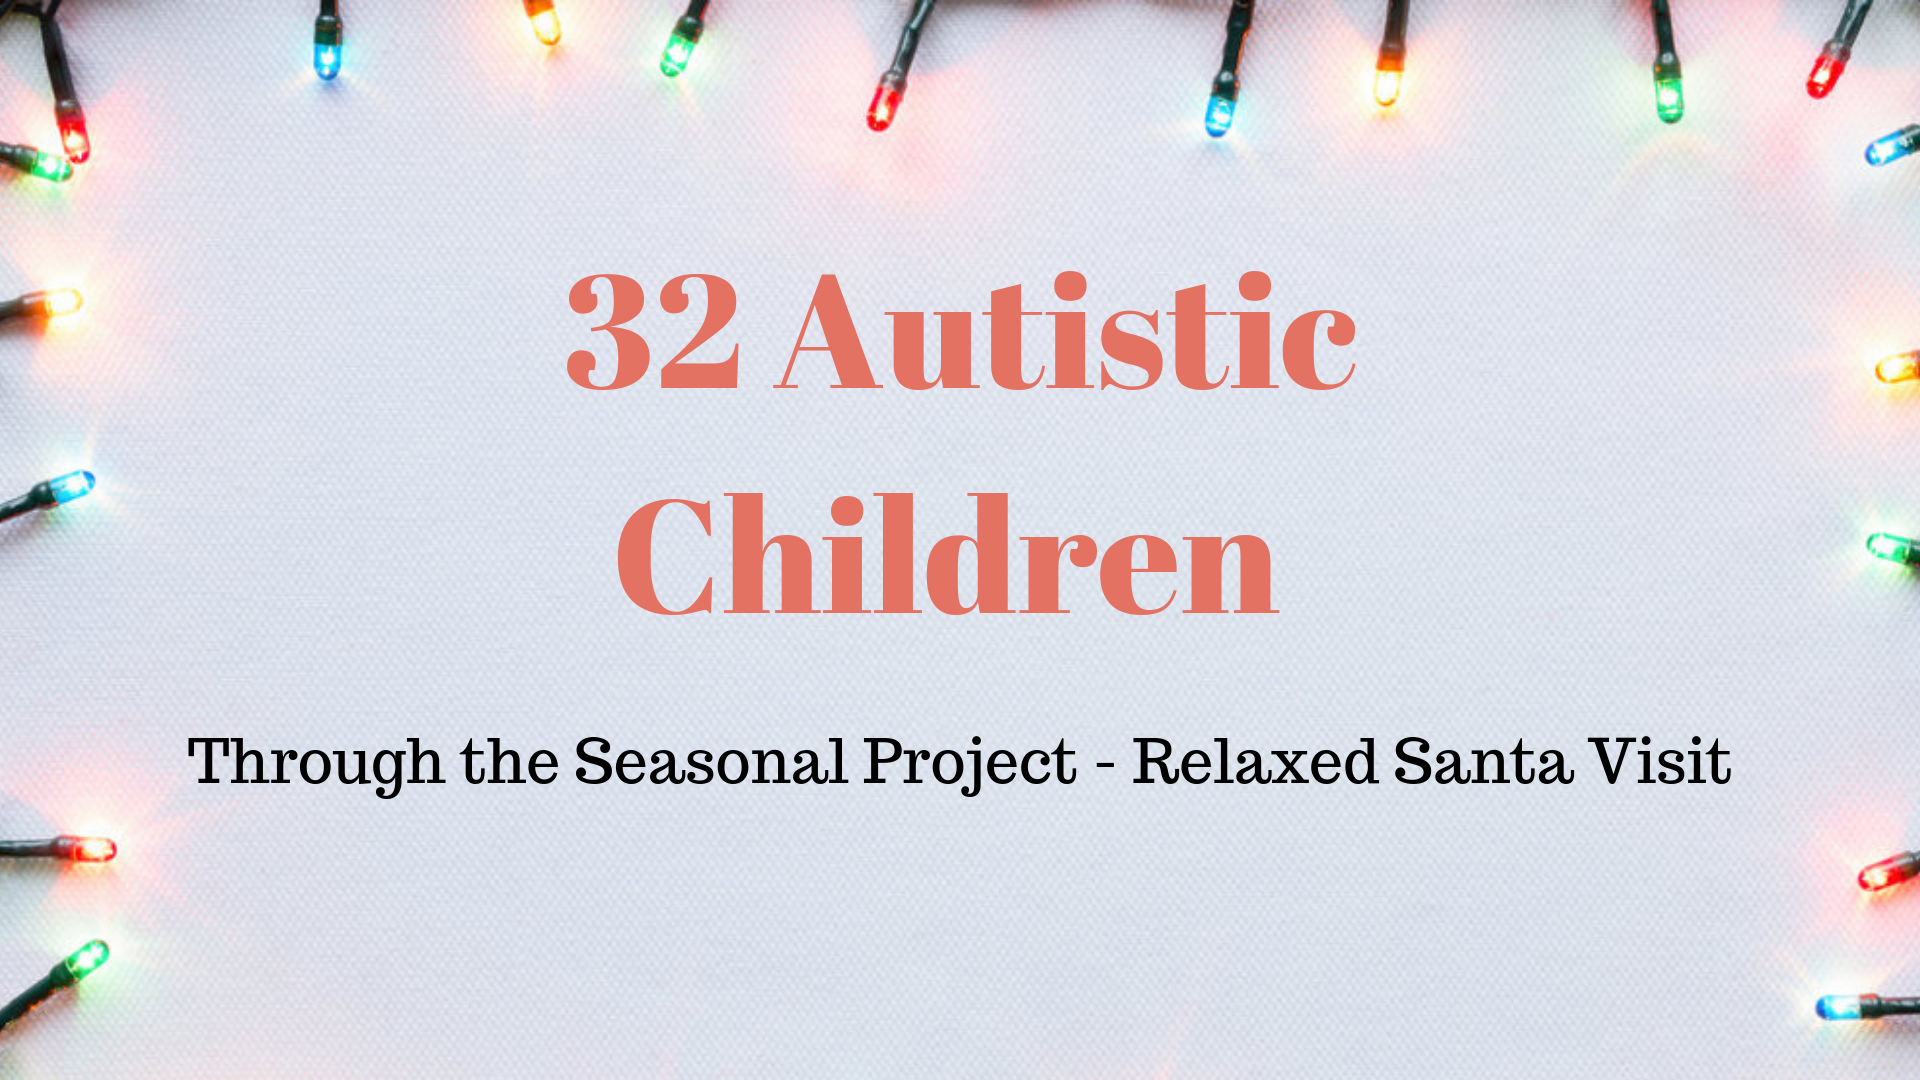 32 Autistic Children.png